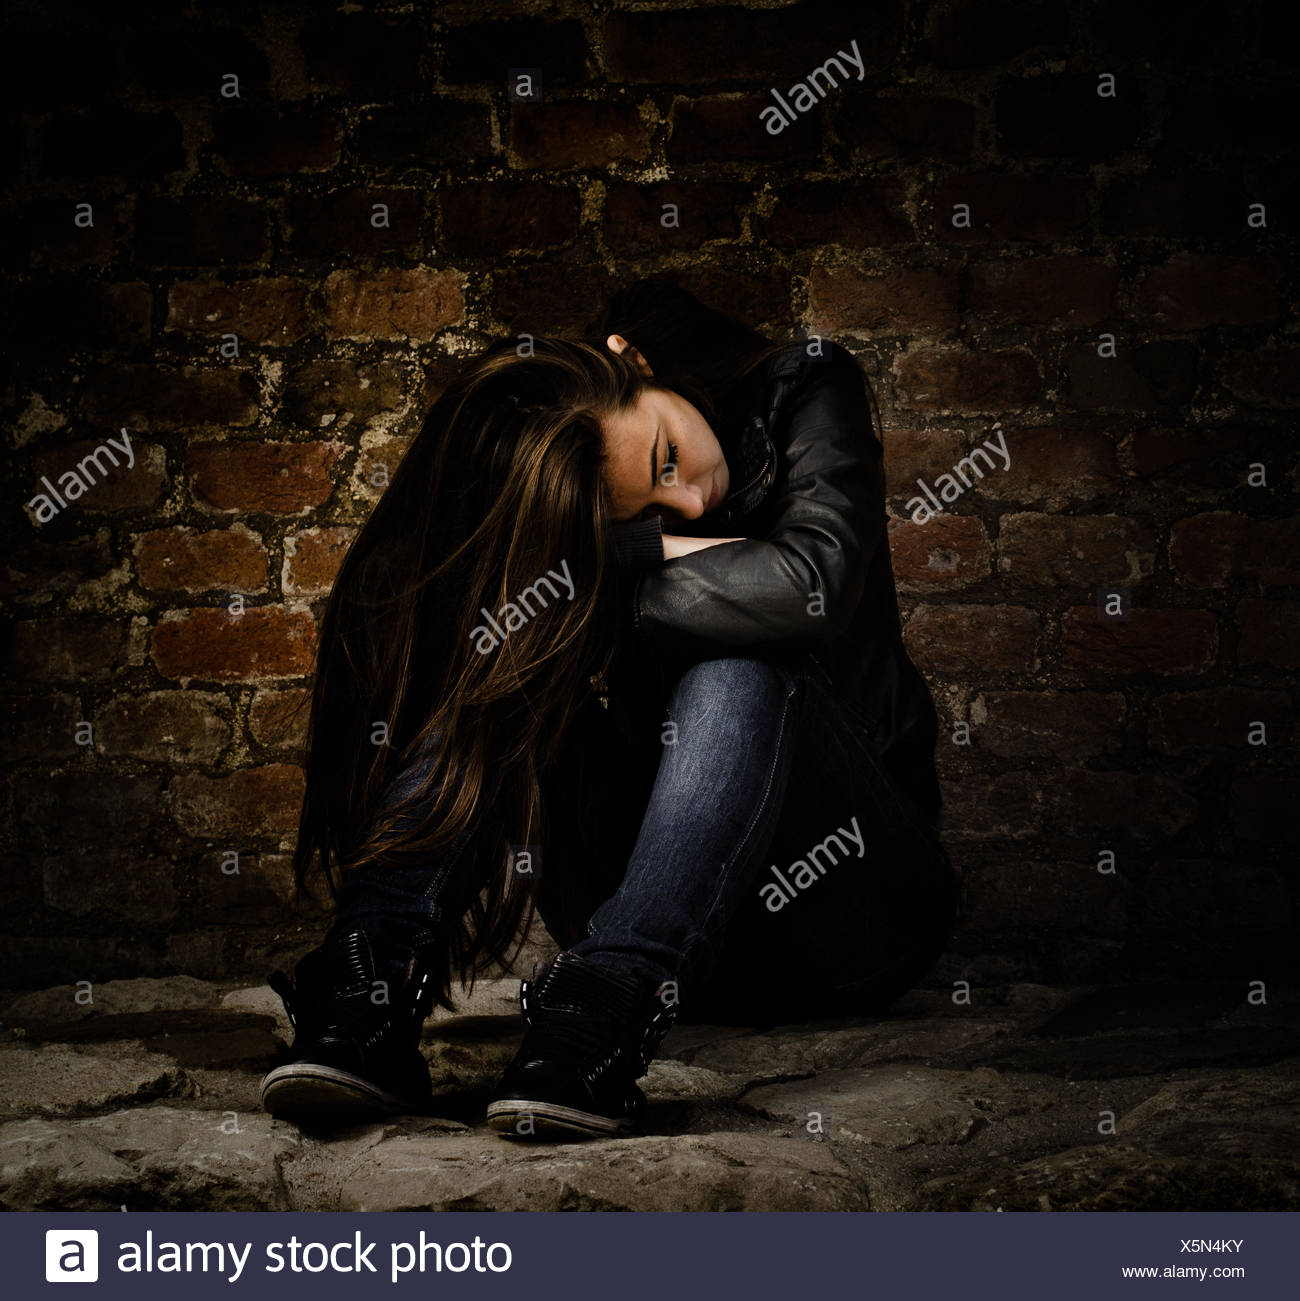 Confused Depressed Girl Wiring Diagrams Circuitlab Public Circuits Tagged Quotconstantcurrentquot Teen Unhappy Emotion Stress Alone Lonely Rh Alamy Com Quotes